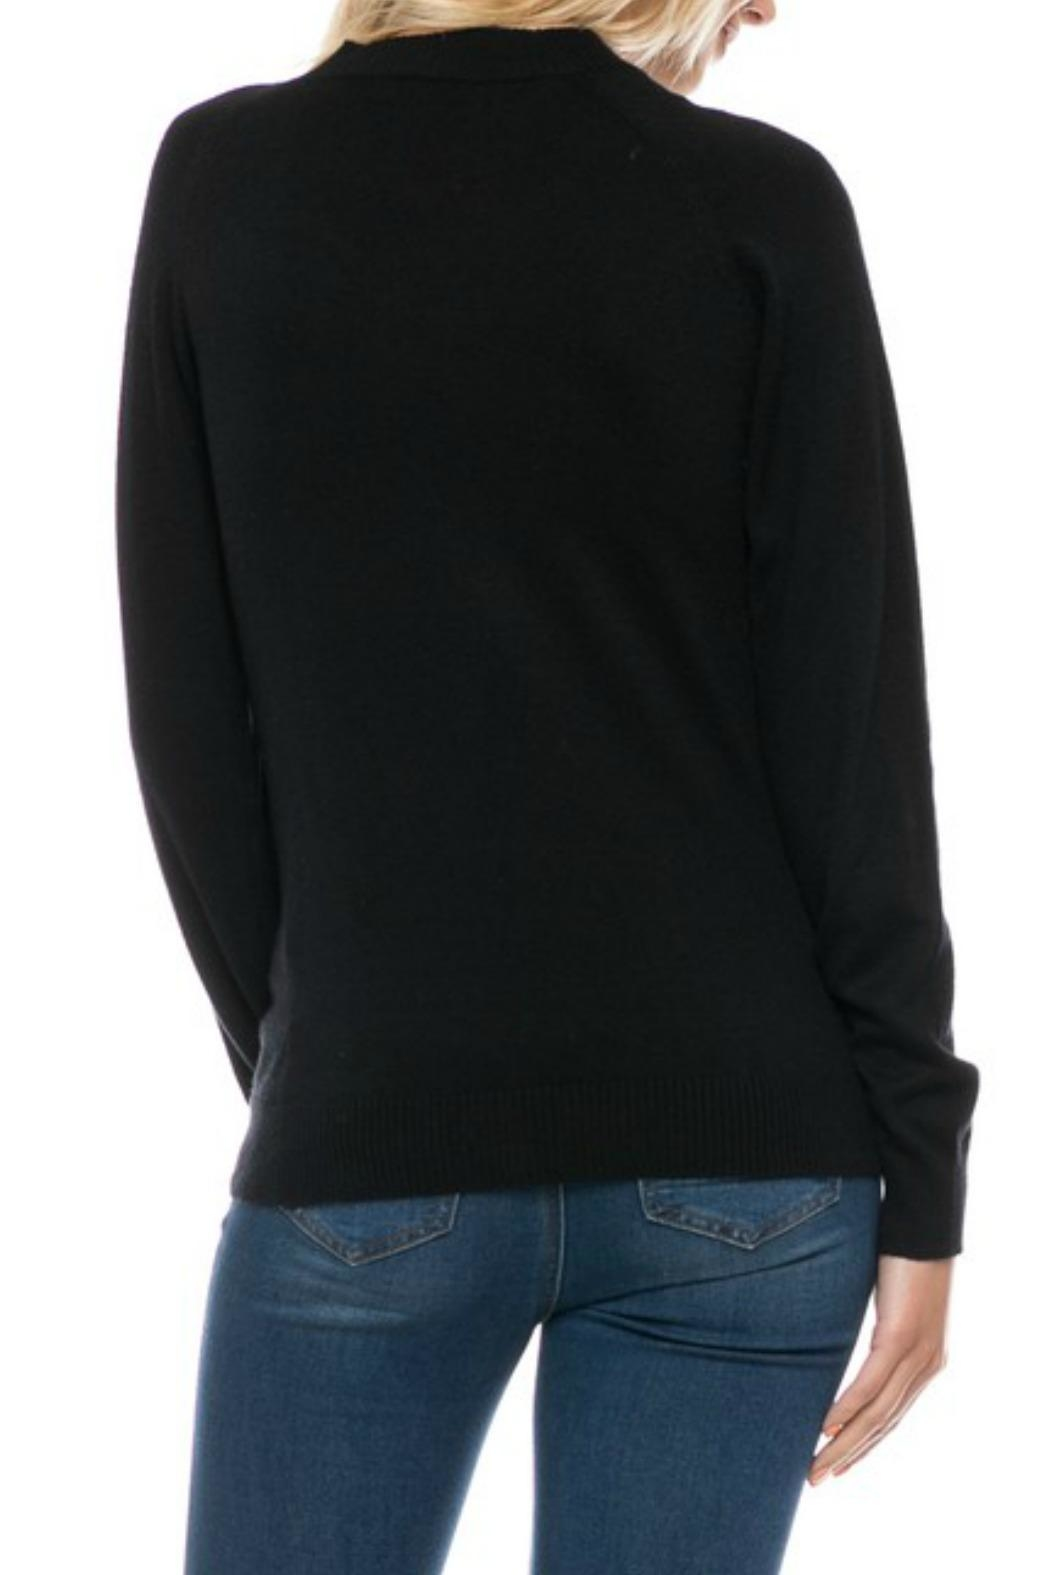 Lovetree Choker Neck Sweater - Back Cropped Image